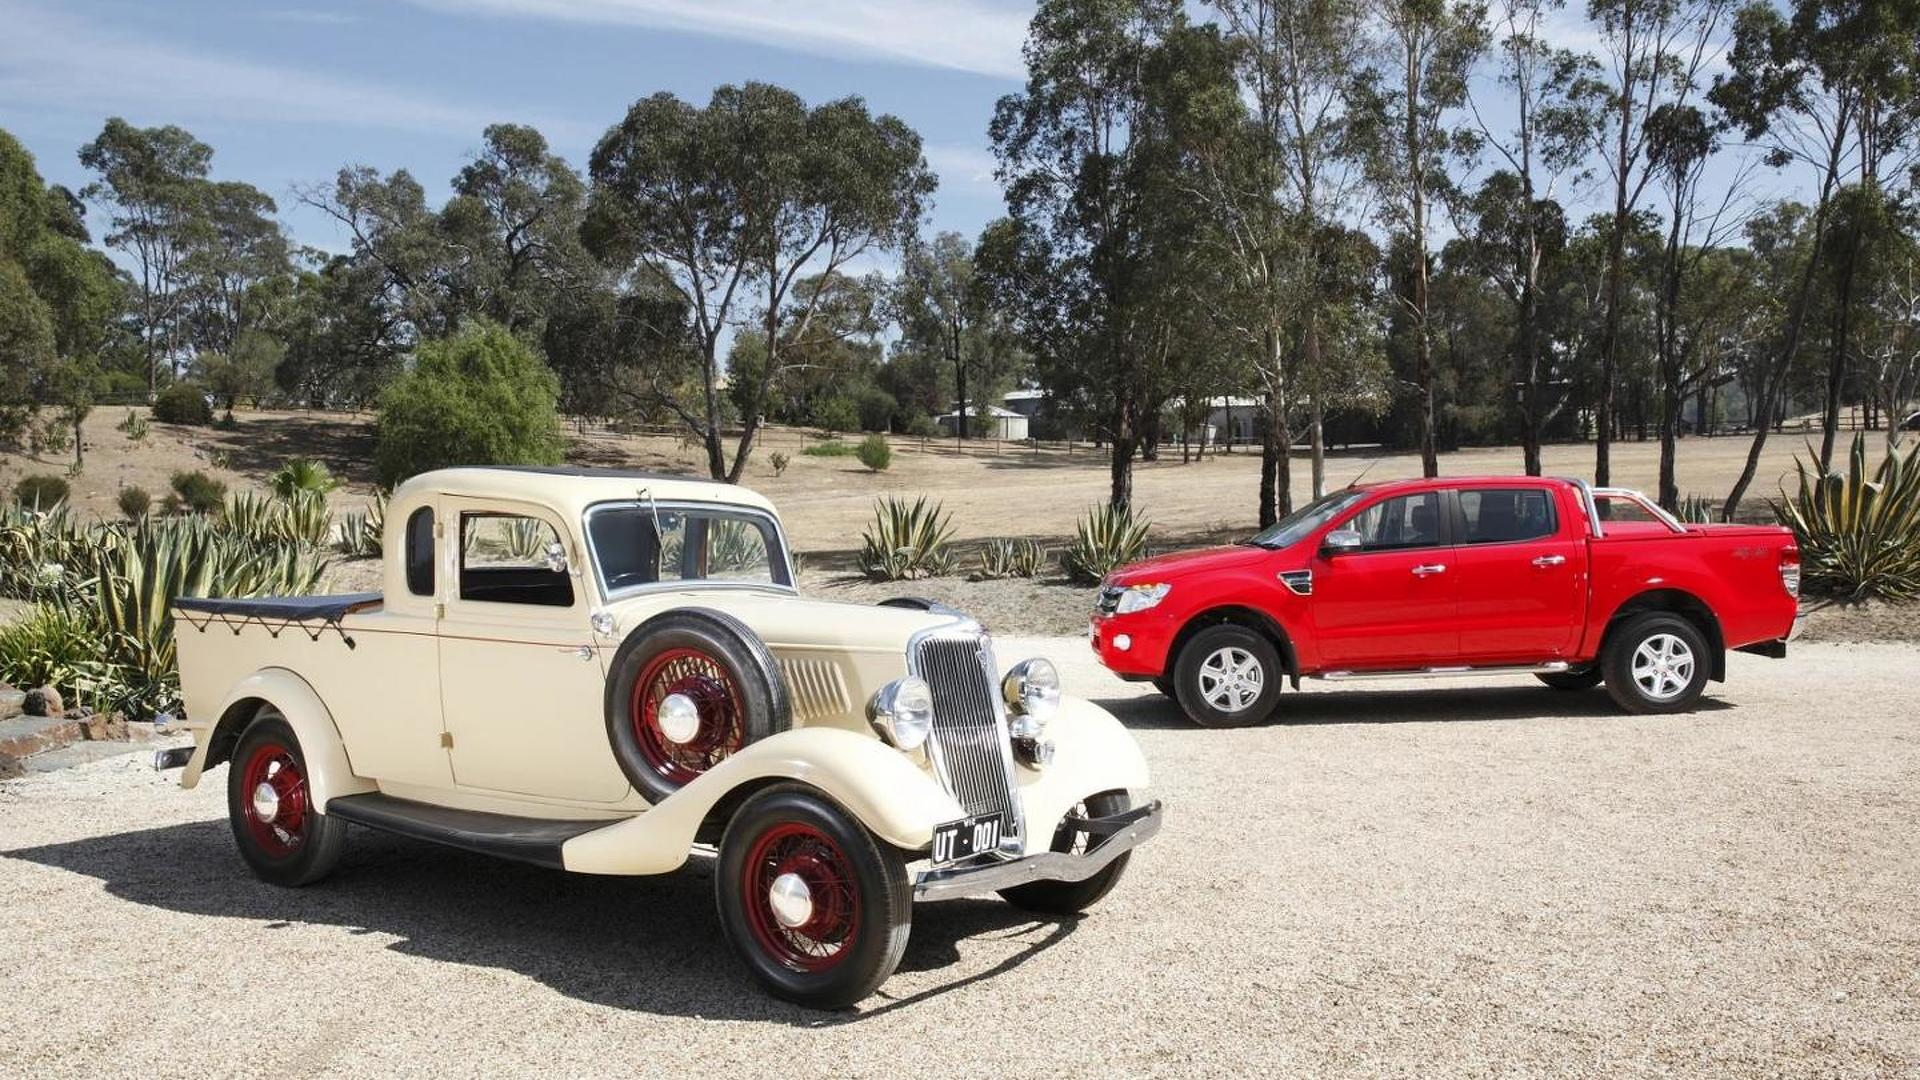 Ford celebrates the 80th anniversary of the Ute as they prepare to kill it